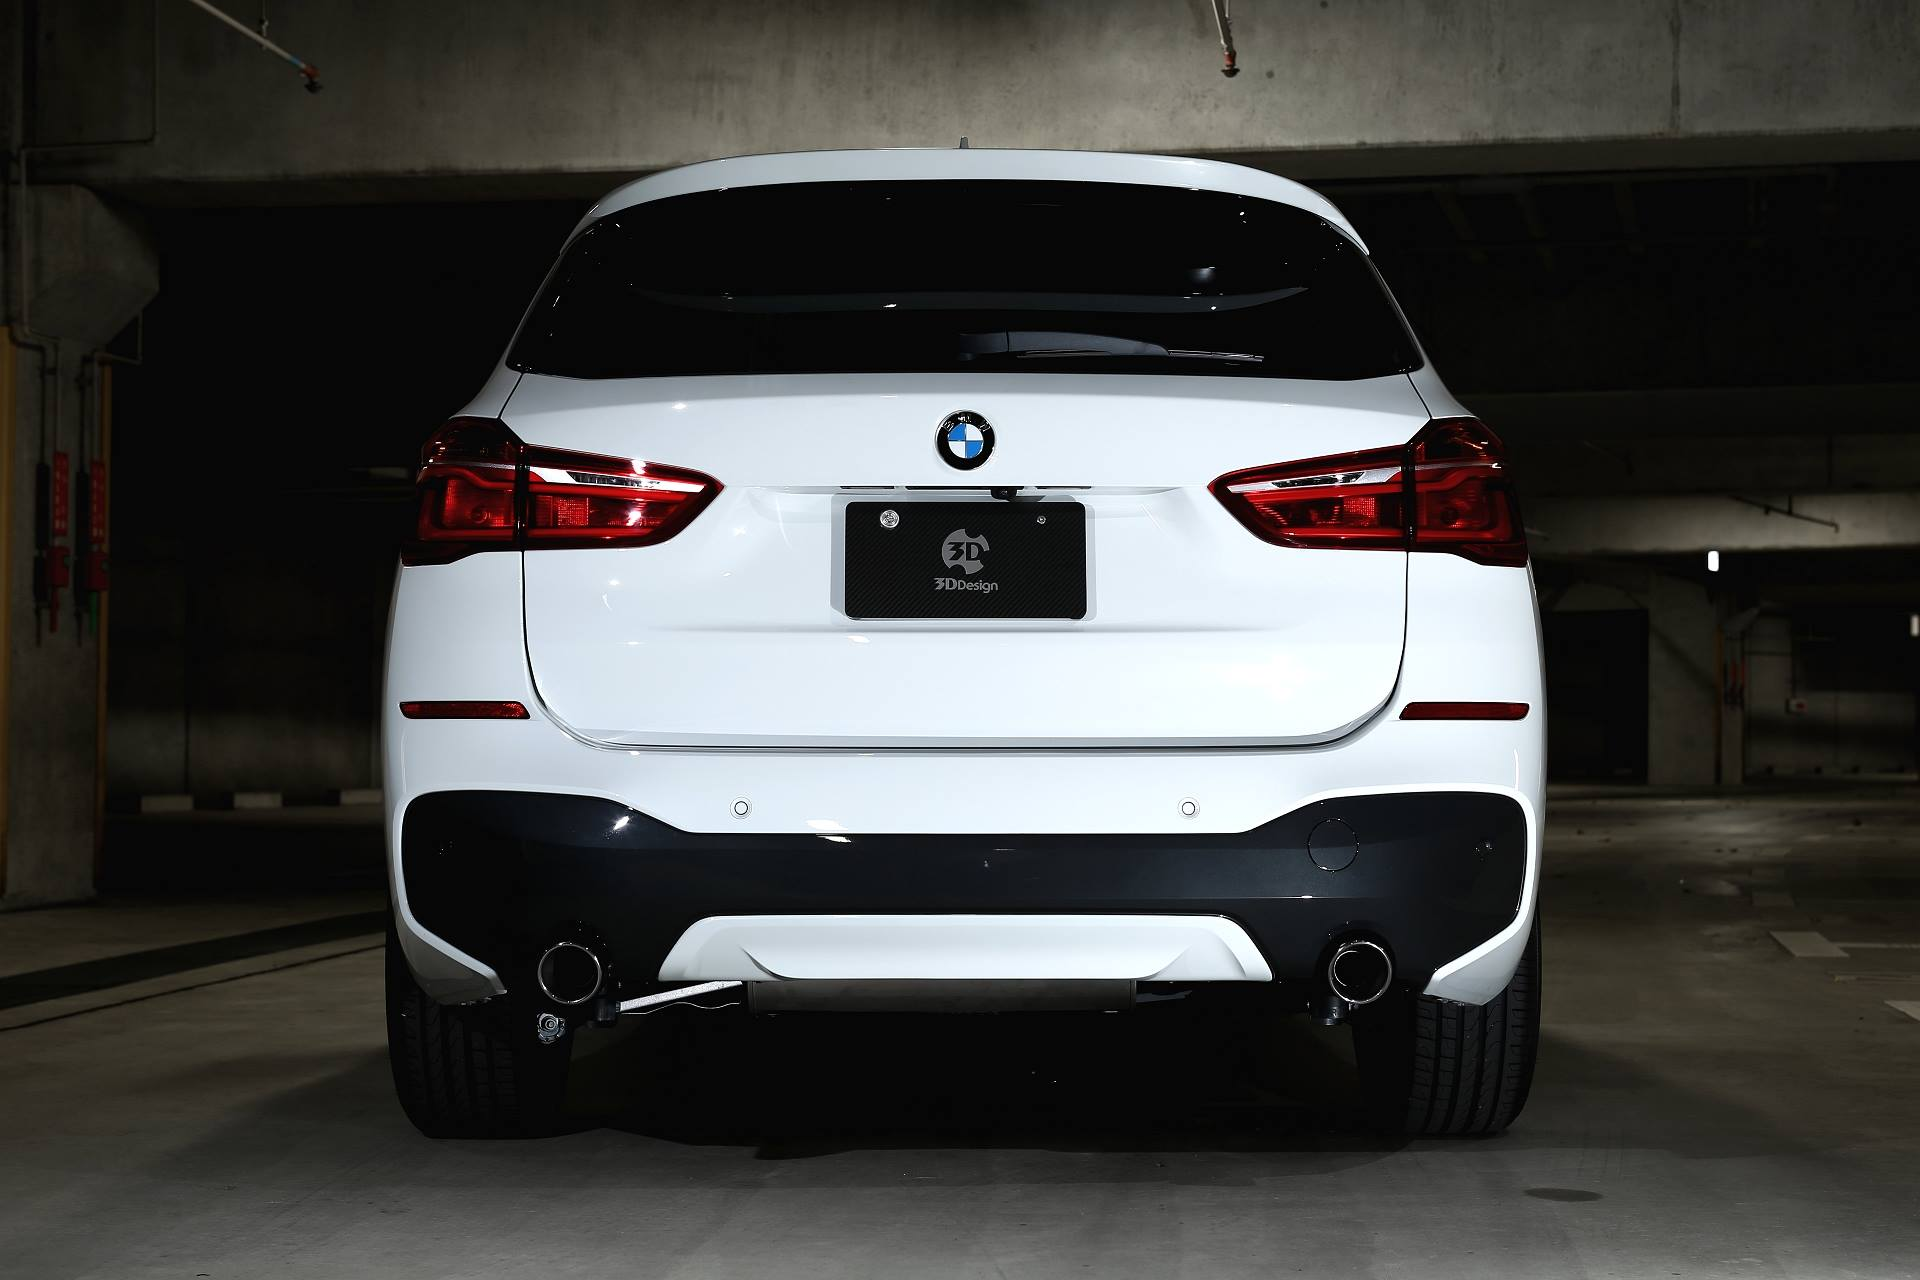 bmw x1 m sport la visione di 3d design program bmwpassion blog. Black Bedroom Furniture Sets. Home Design Ideas